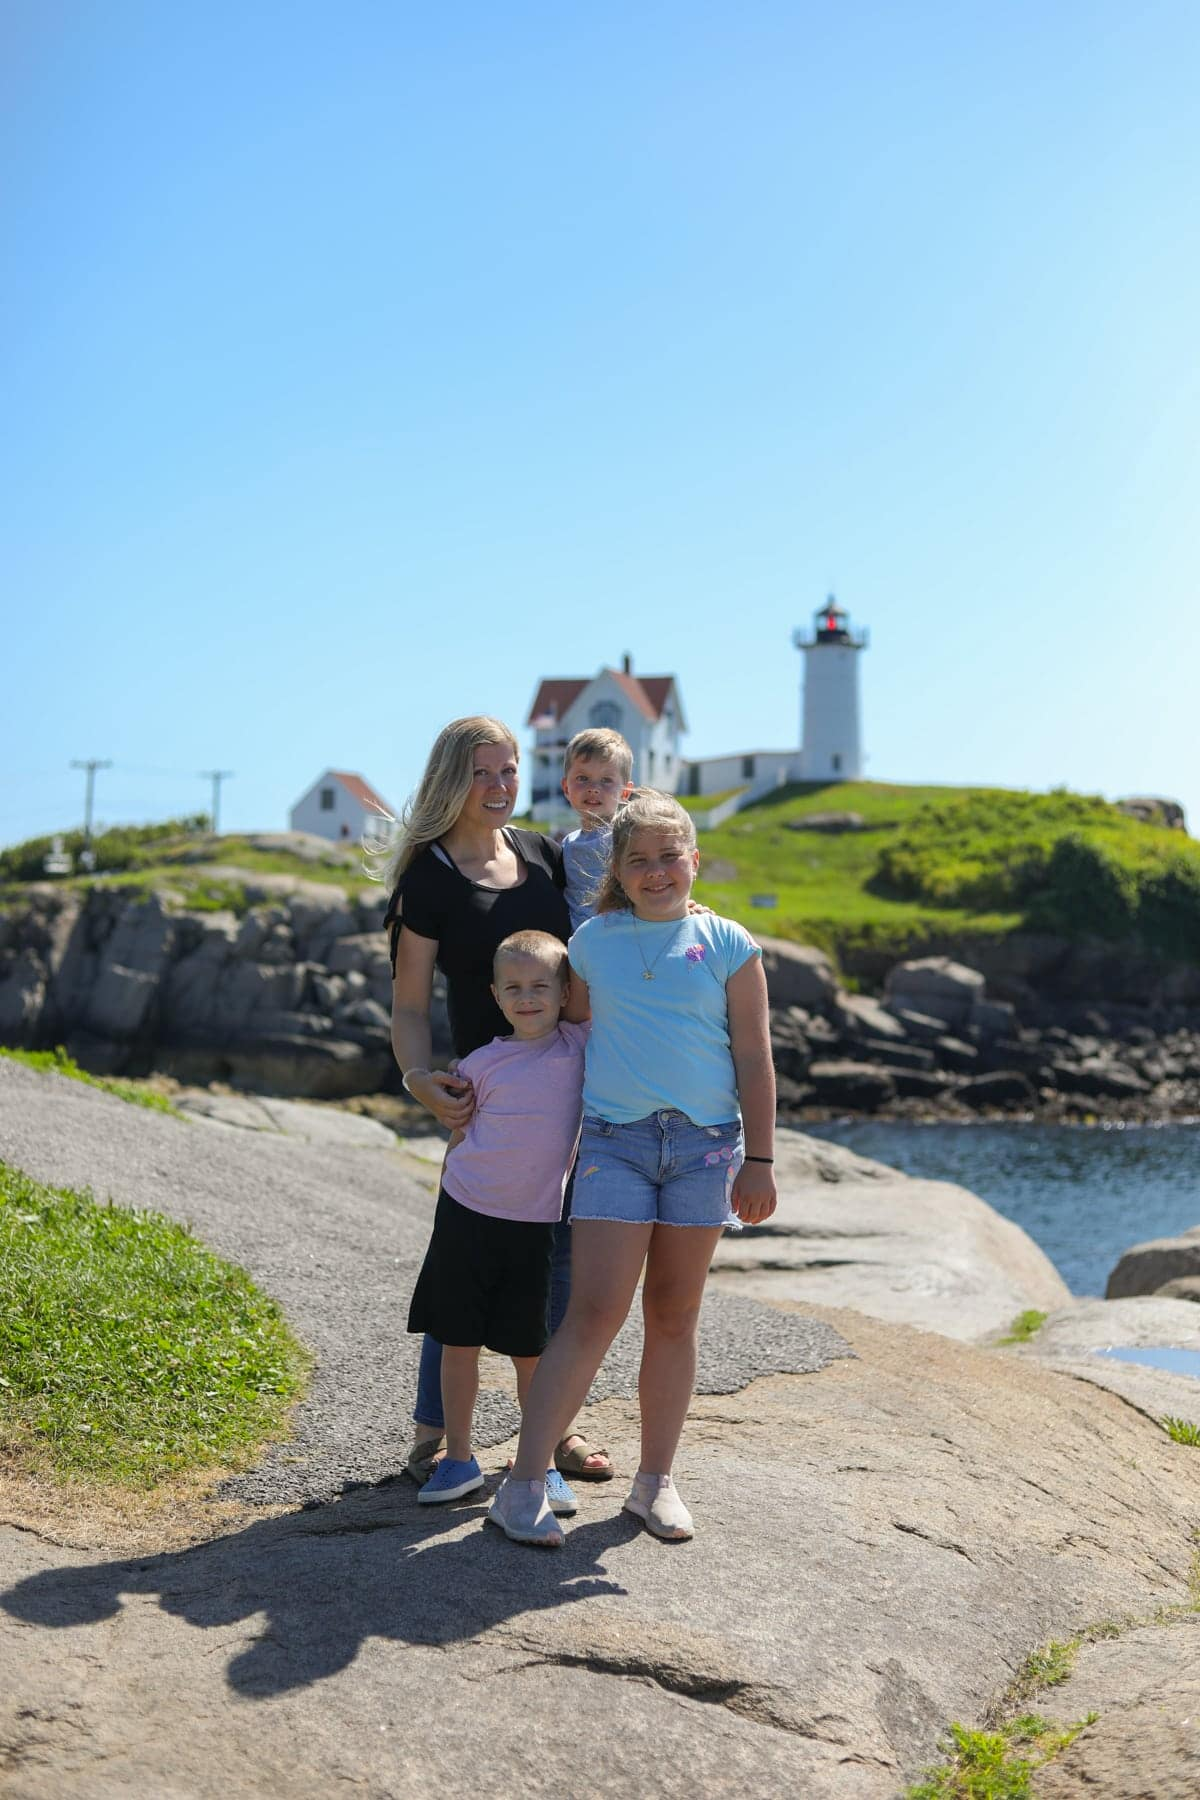 Lauren and the kids at the beach with a lighthouse in the background